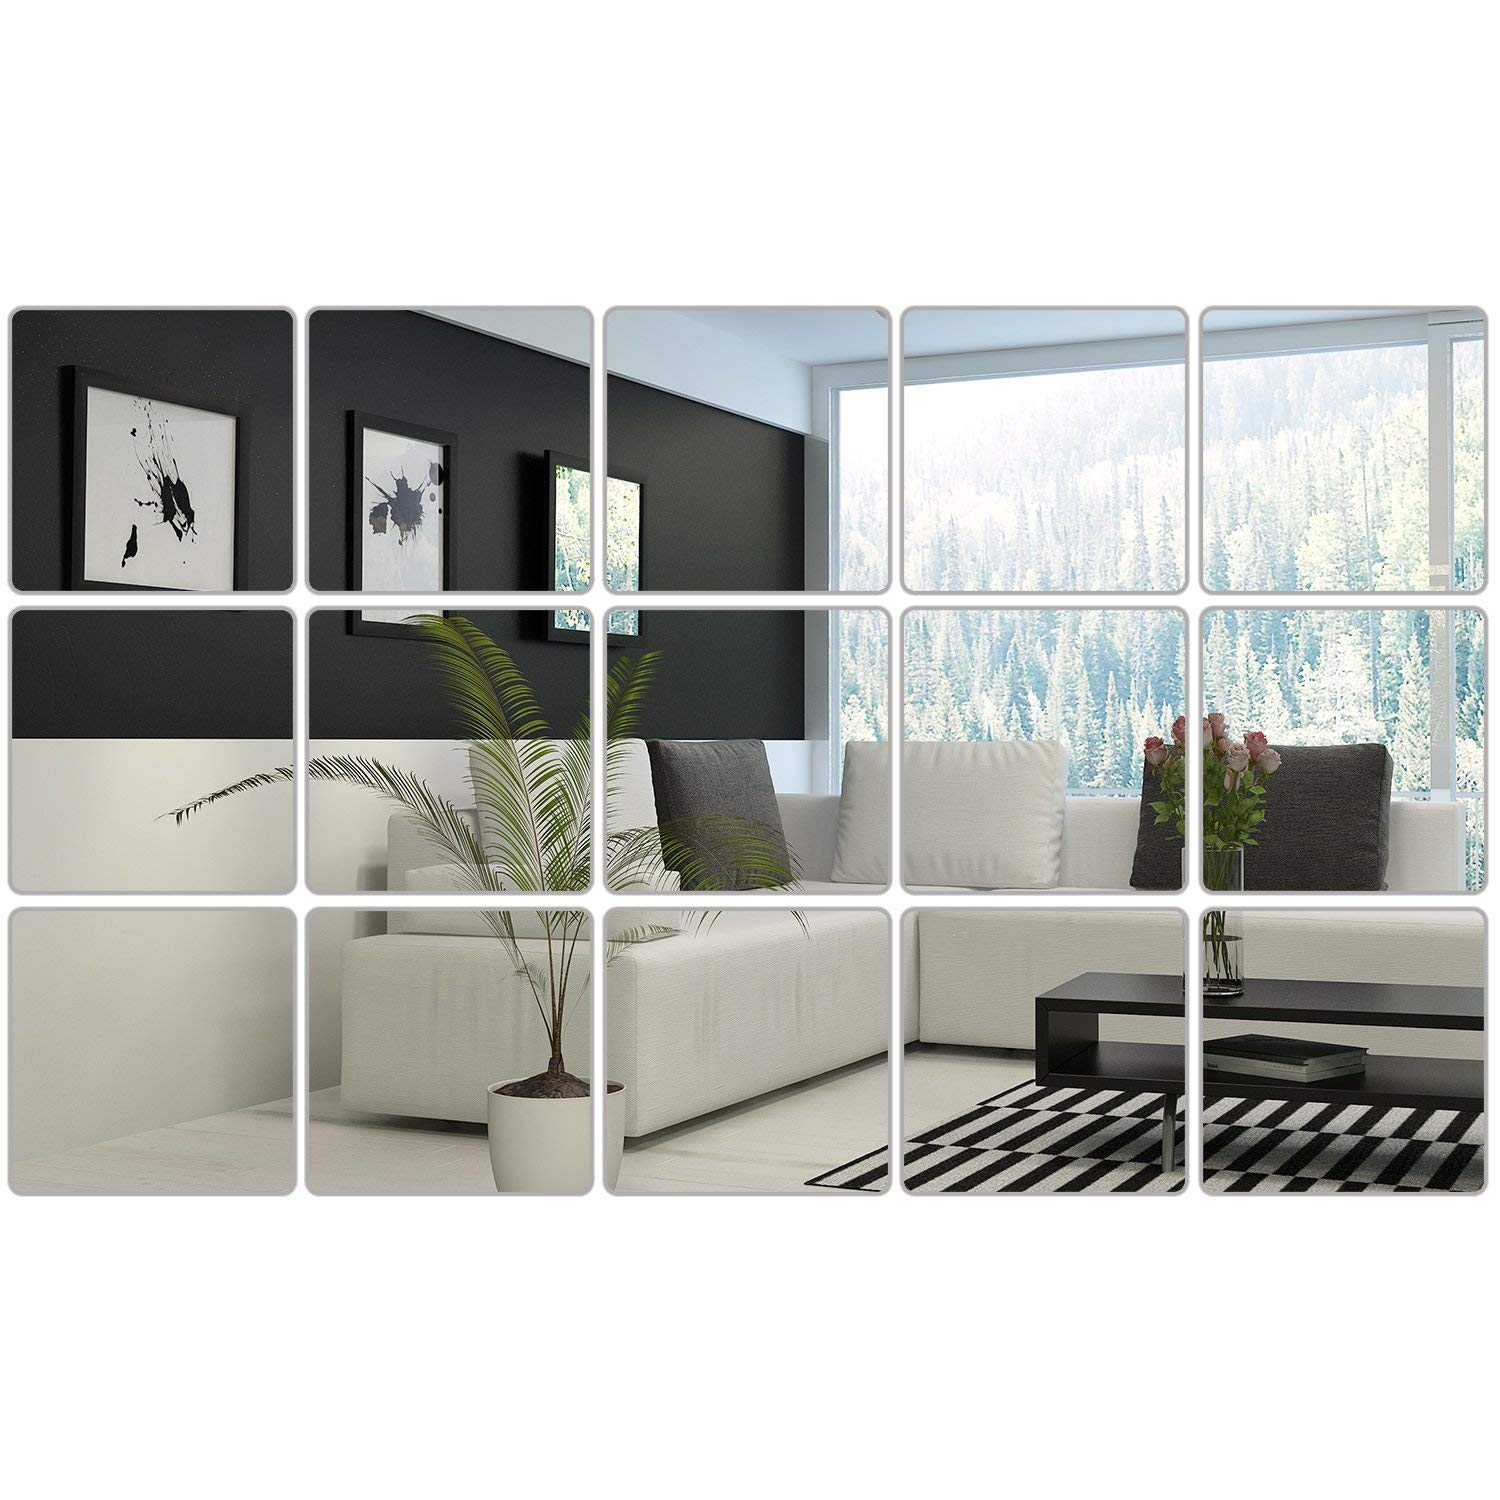 16PCS/9PCS 6 x 6 Inches Mirror Sheets Square Mirror Decals Self Adhesive Mirror Tiles Non-Glass Mirror Stickers